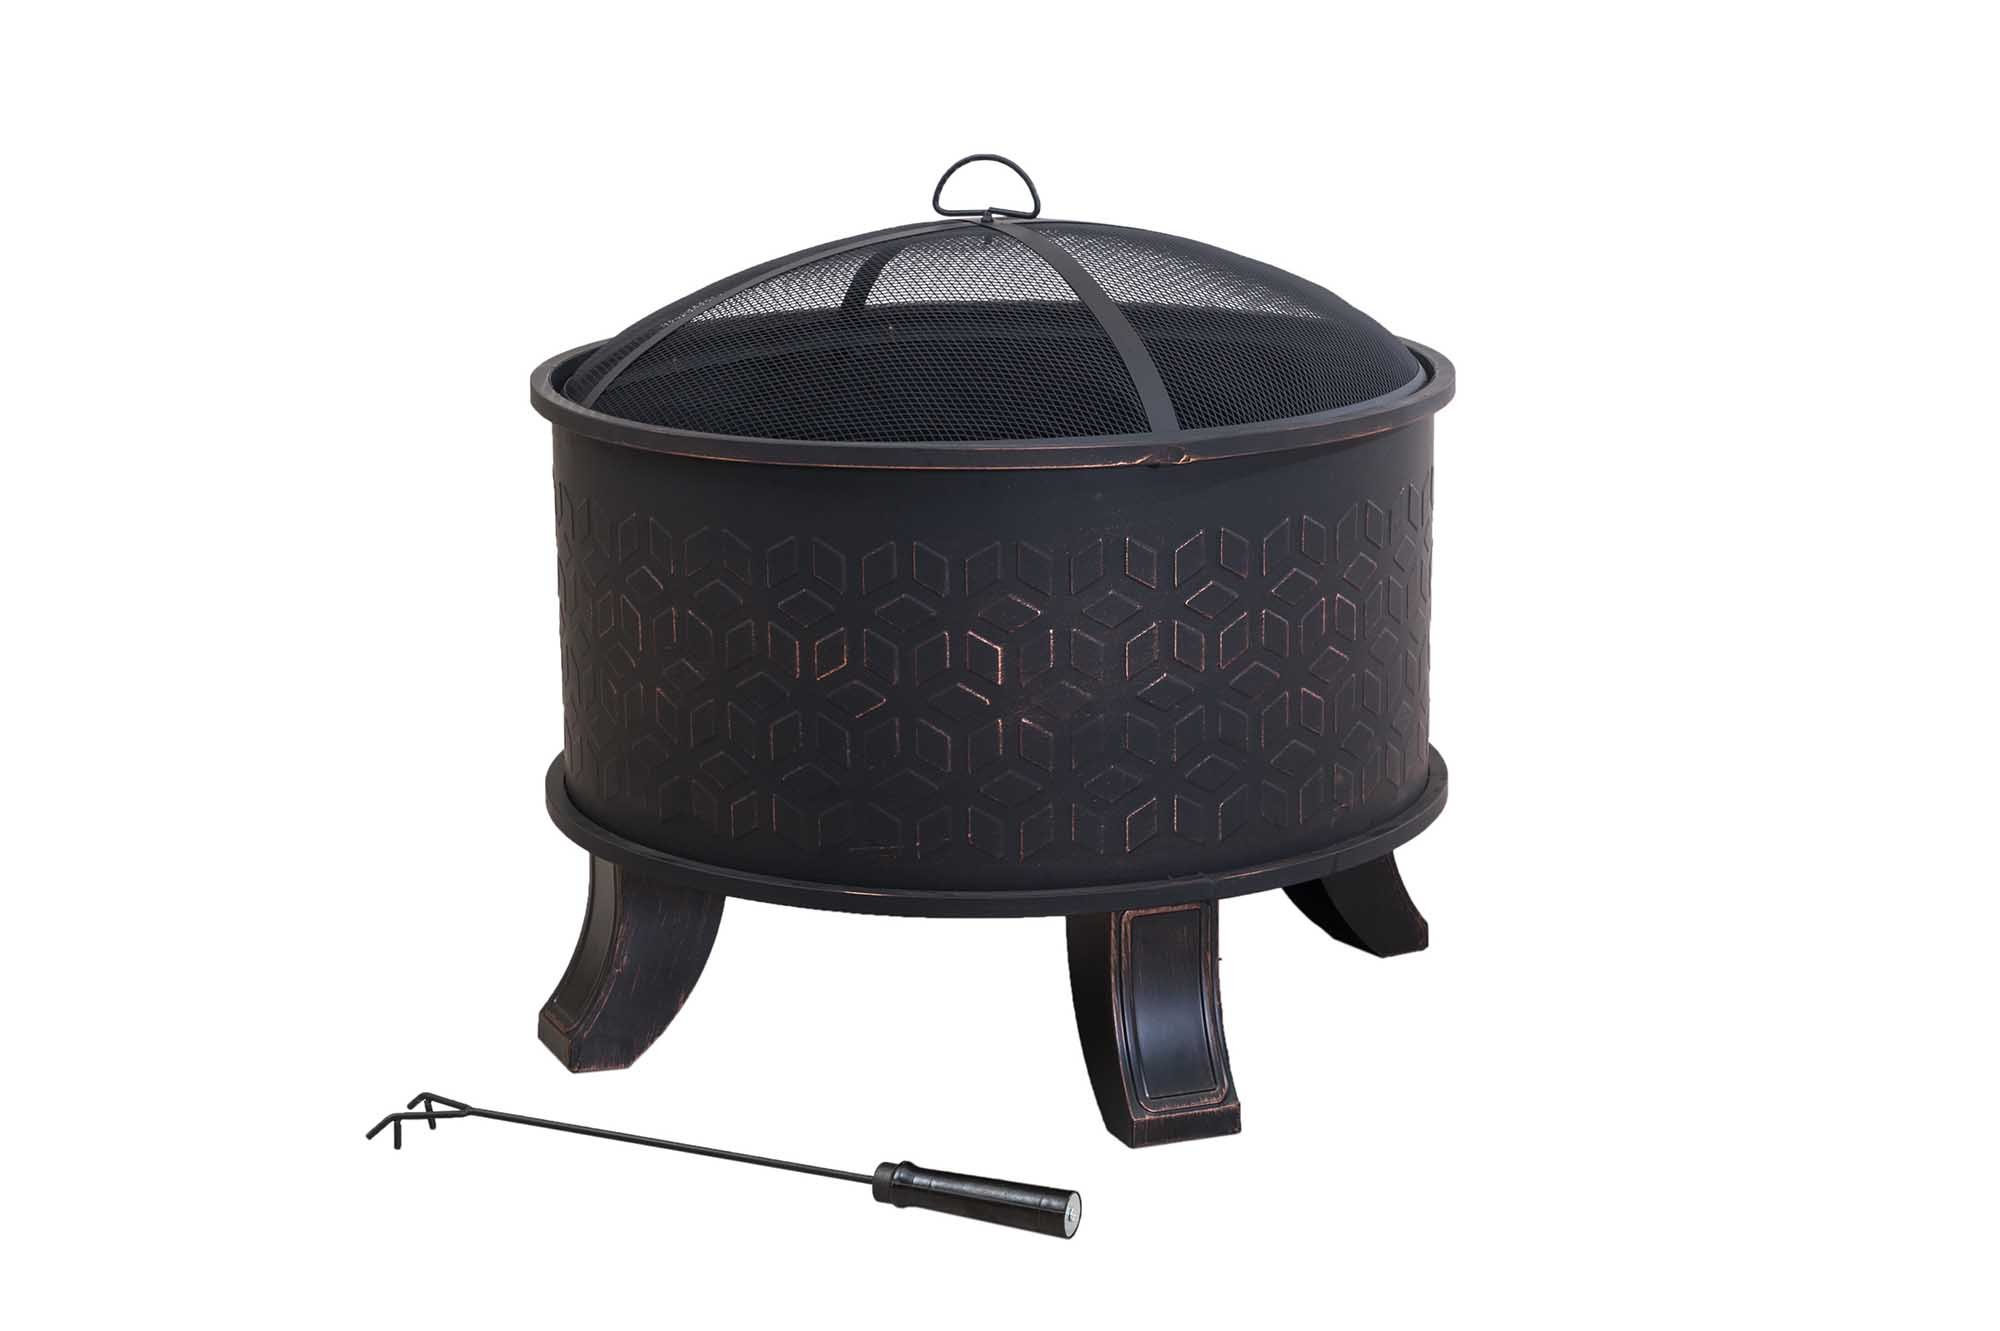 Sunjoy 110501018 Wood Fire Pit by Sunjoy